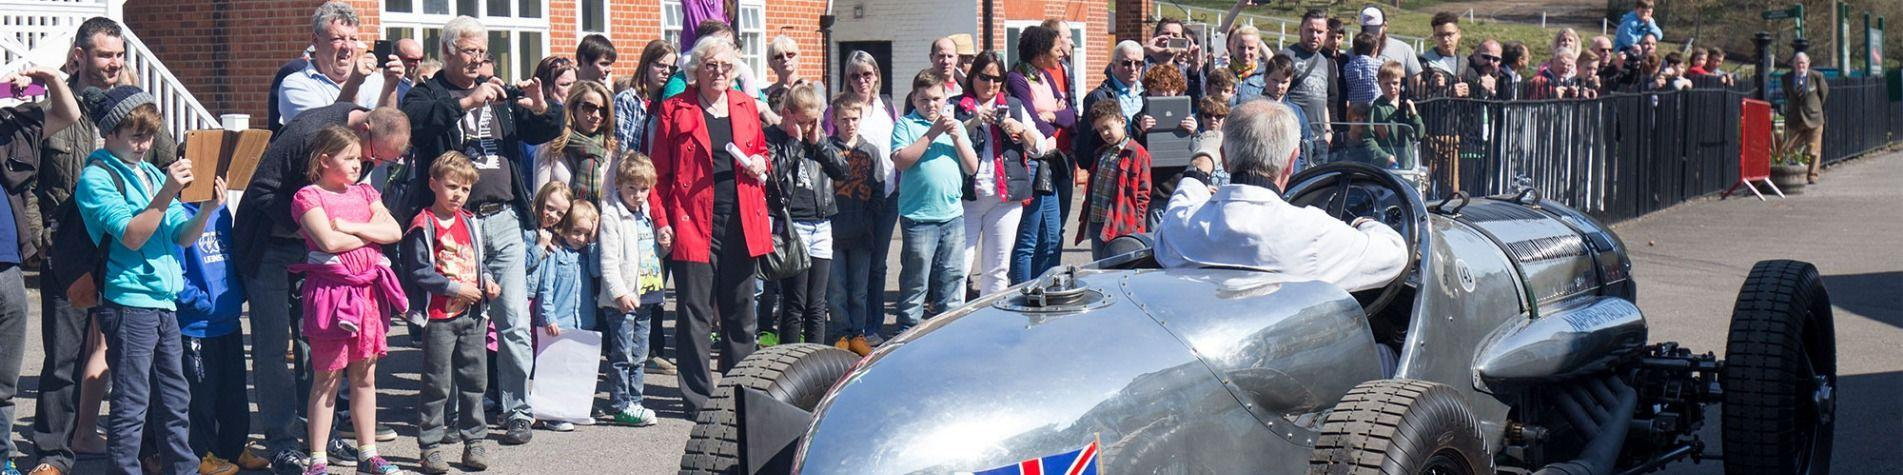 napier-railton-summer-header.jpg